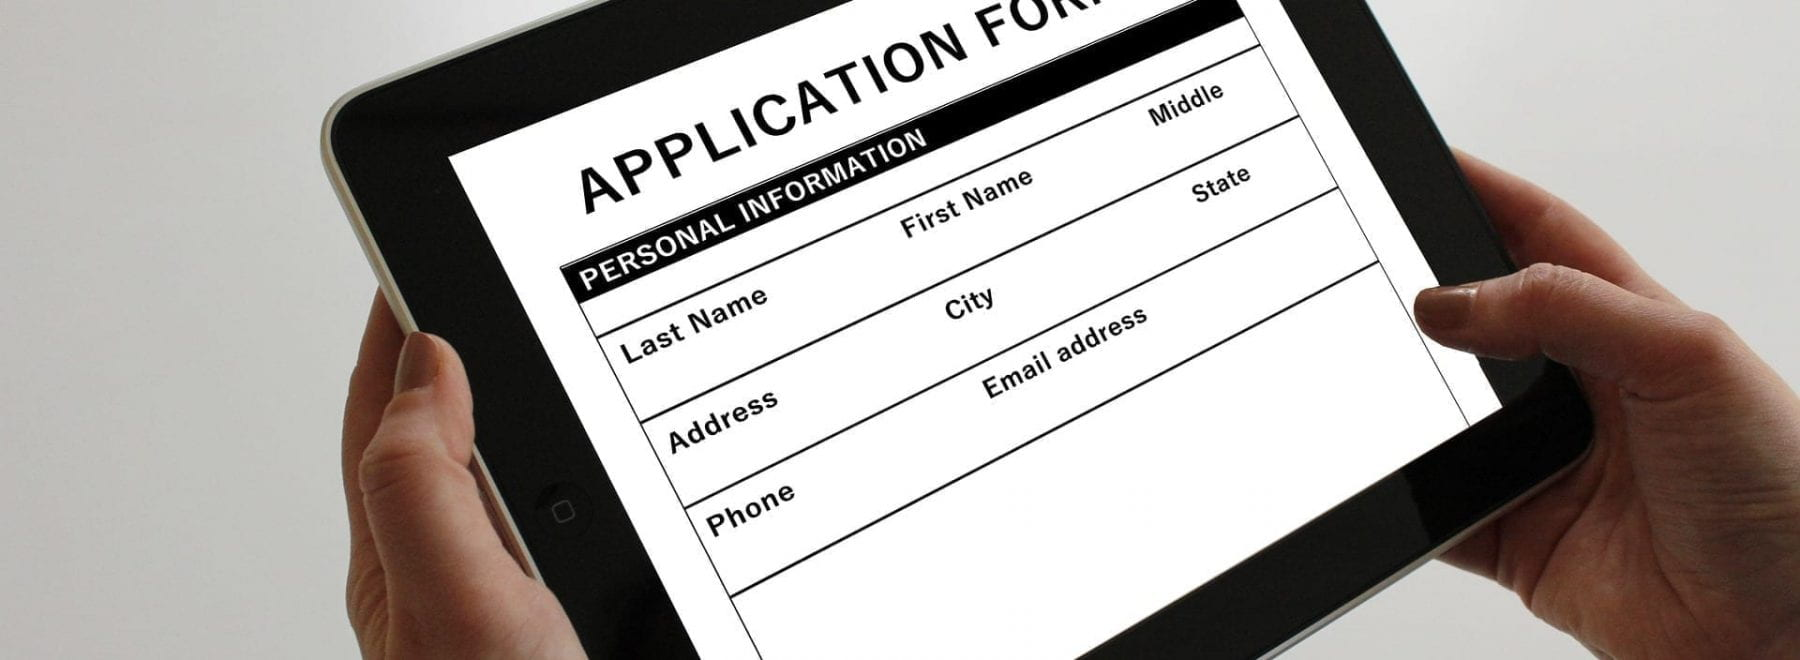 ipad with application form on it